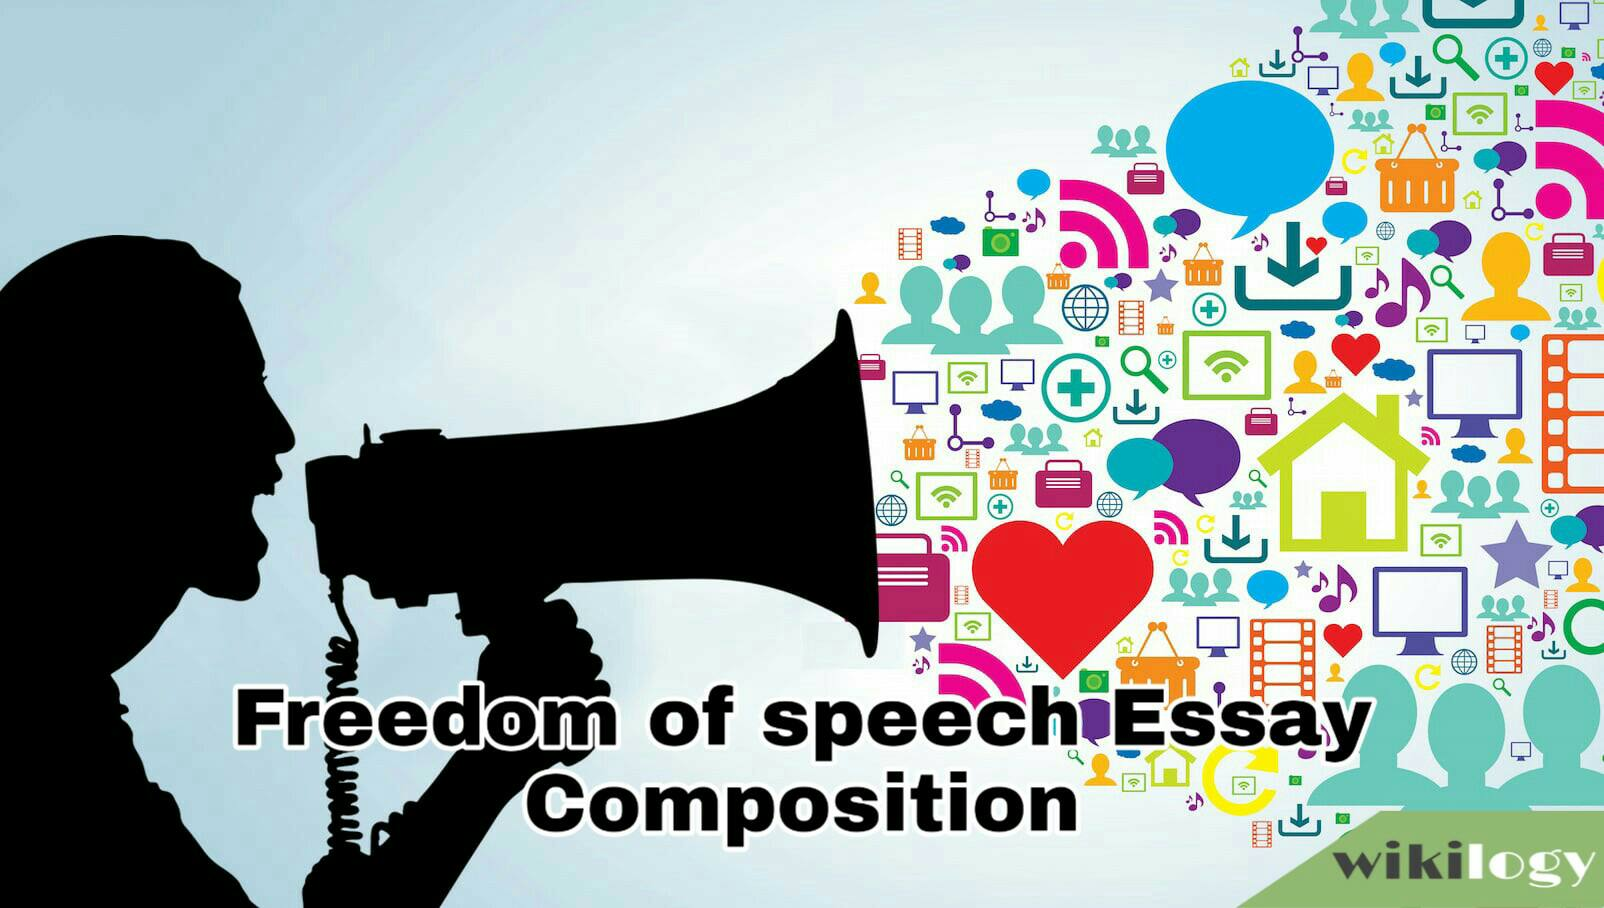 Freedom of speech Essay Composition